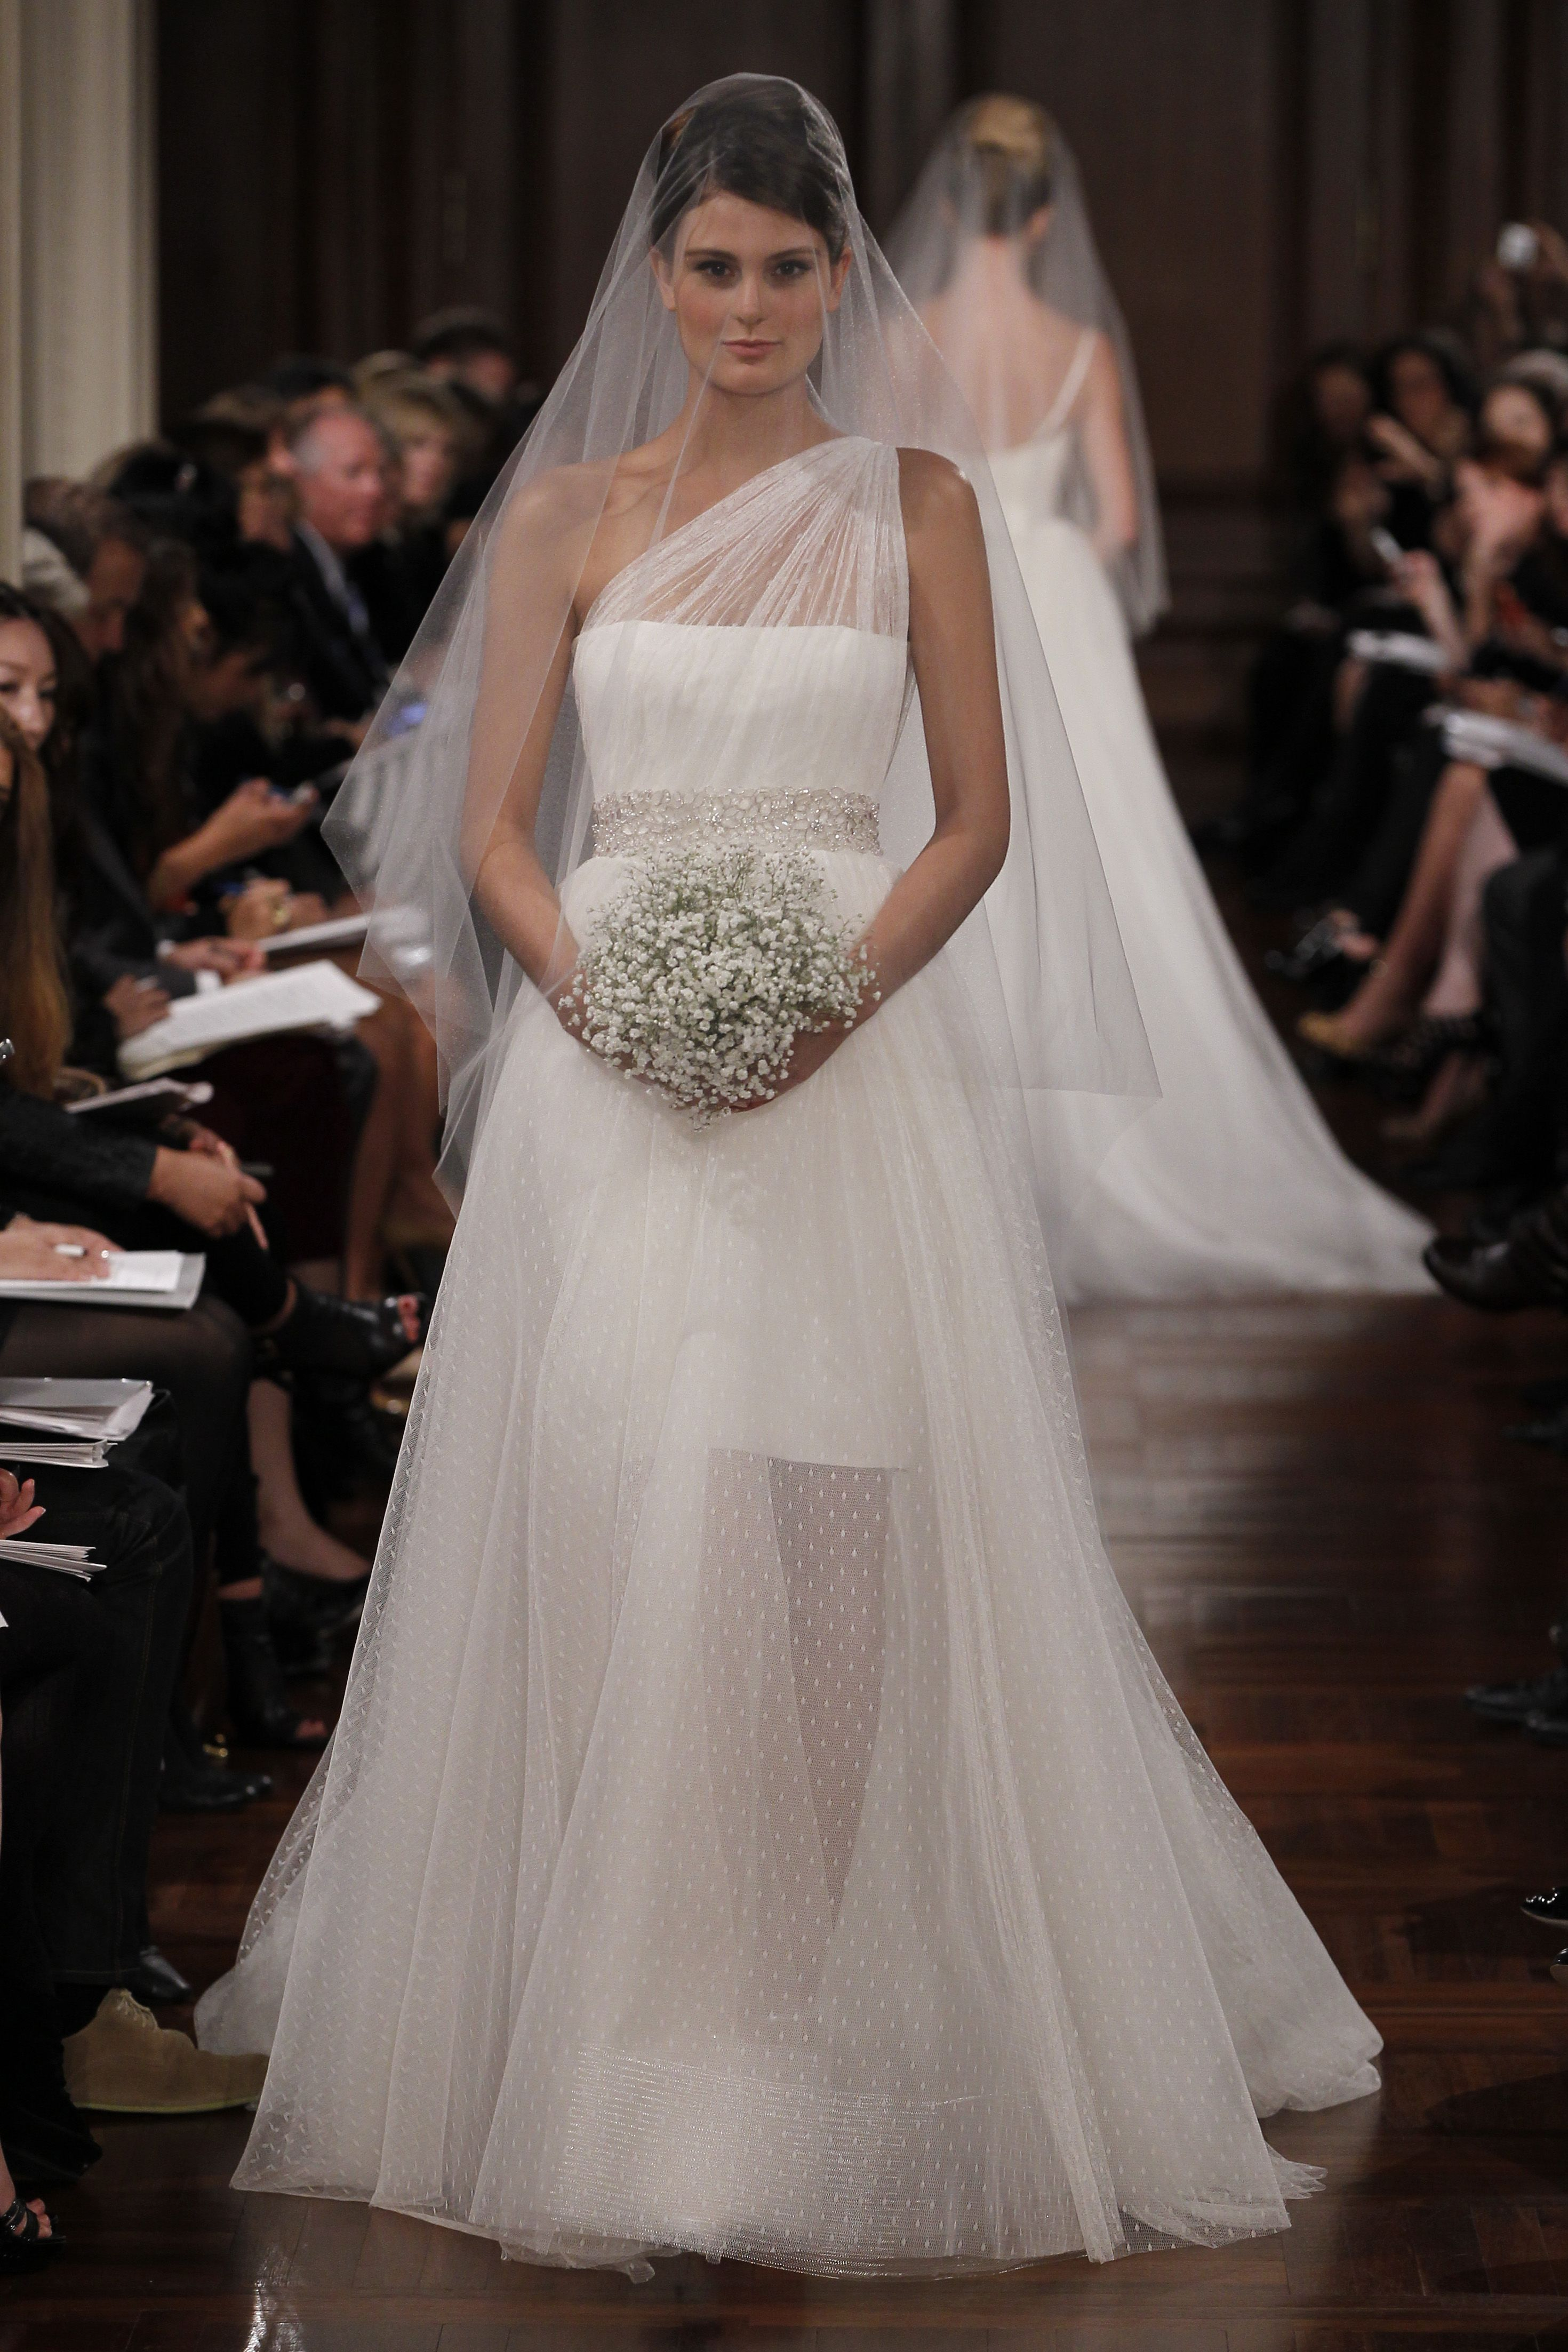 Small wedding dresses  Romona Keveza RK  Just In Case  Pinterest  Whimsical wedding